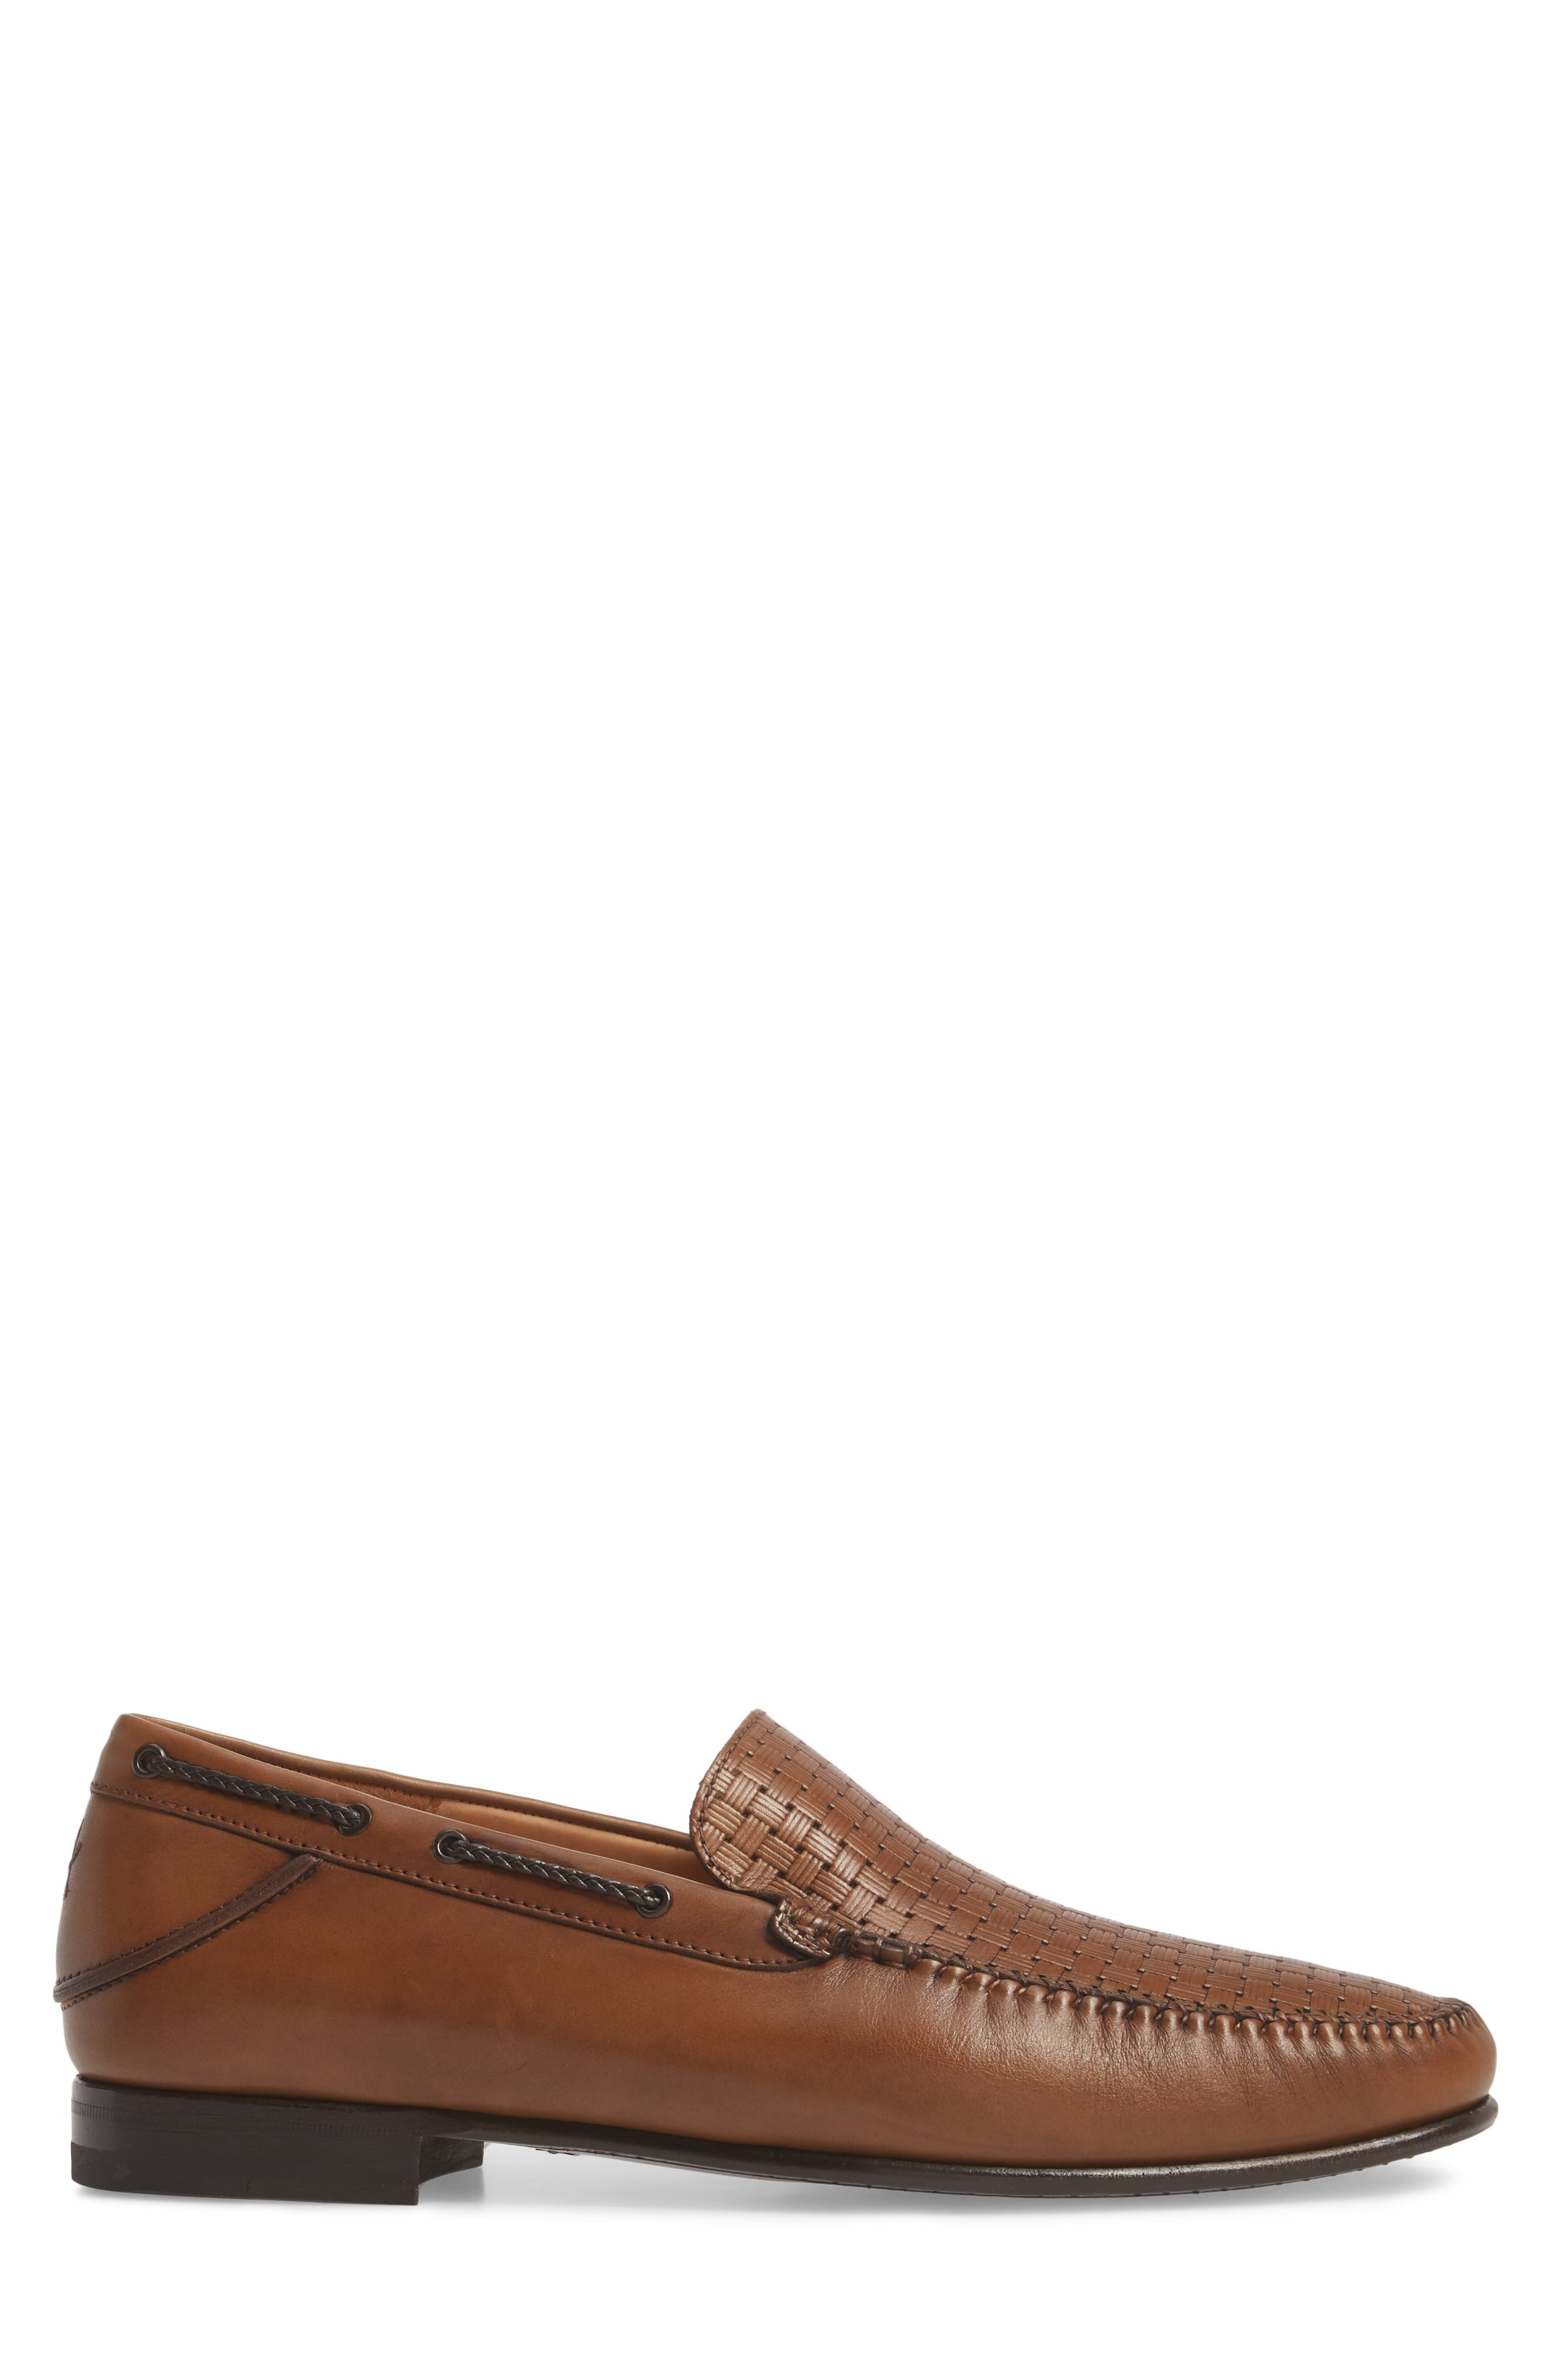 Jano Embossed Moc-Toe Loafer,                             Alternate thumbnail 3, color,                             Cognac Leather